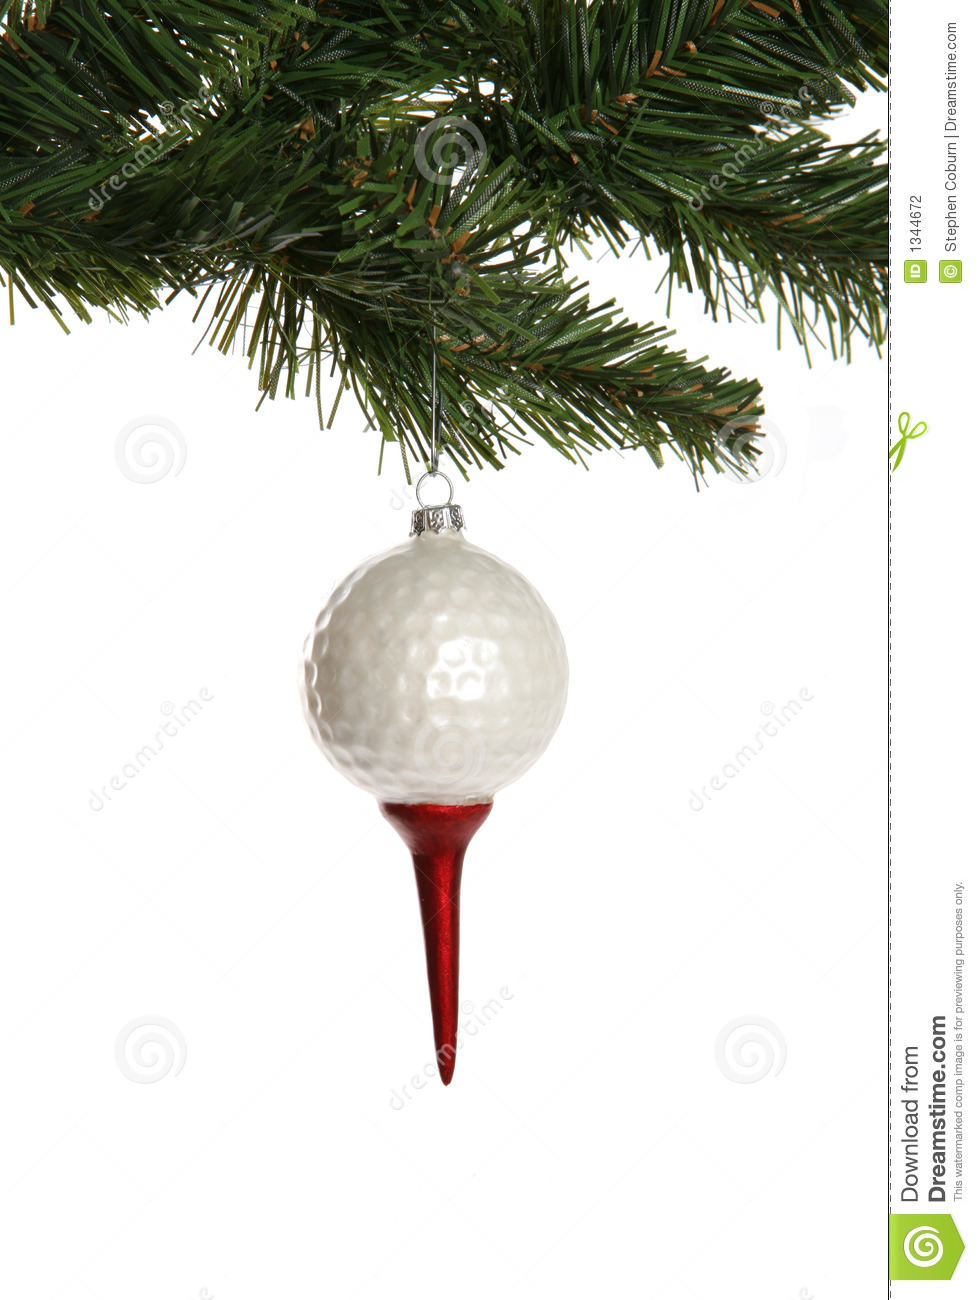 Golf Ball Christmas Ornaments